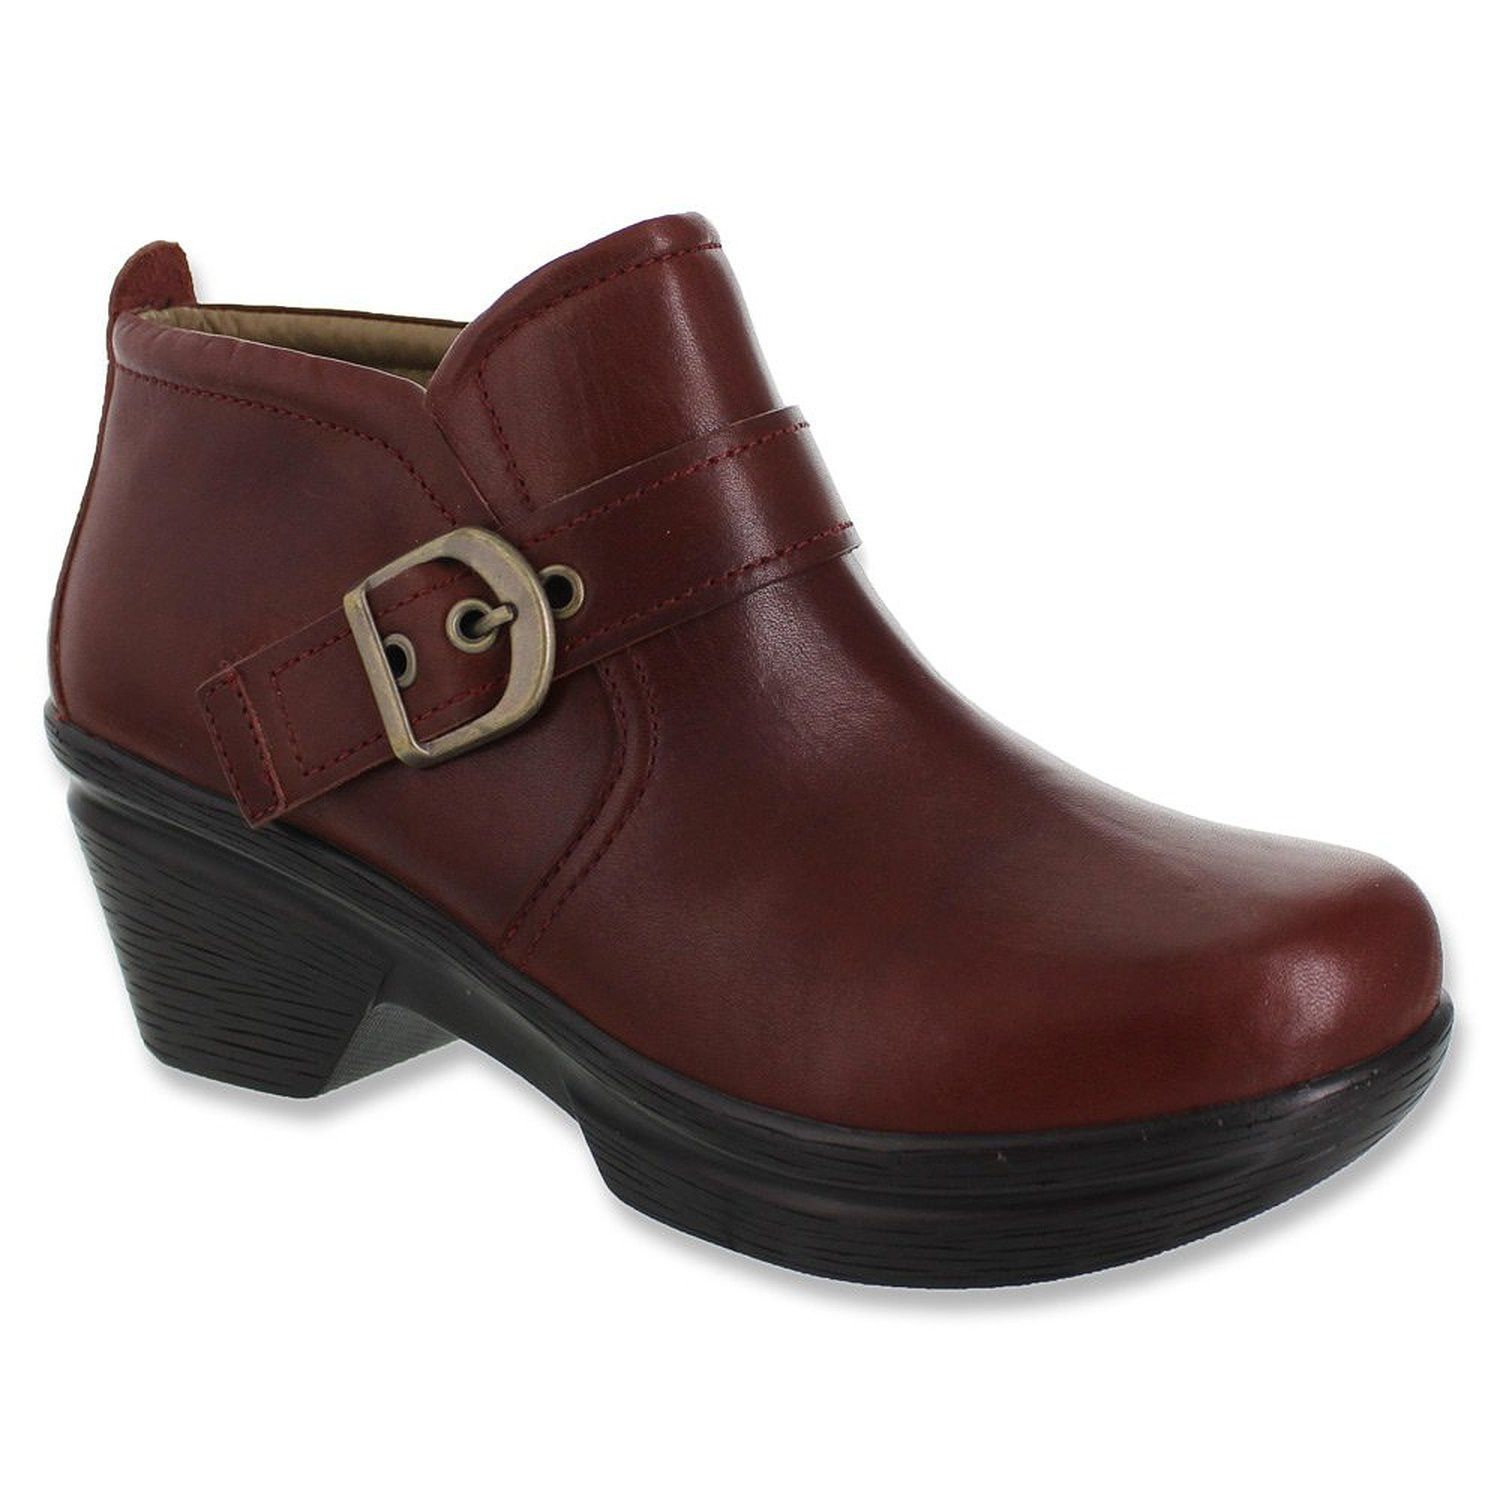 Sanita Womens Boots Leather Norma Bordeaux Polished